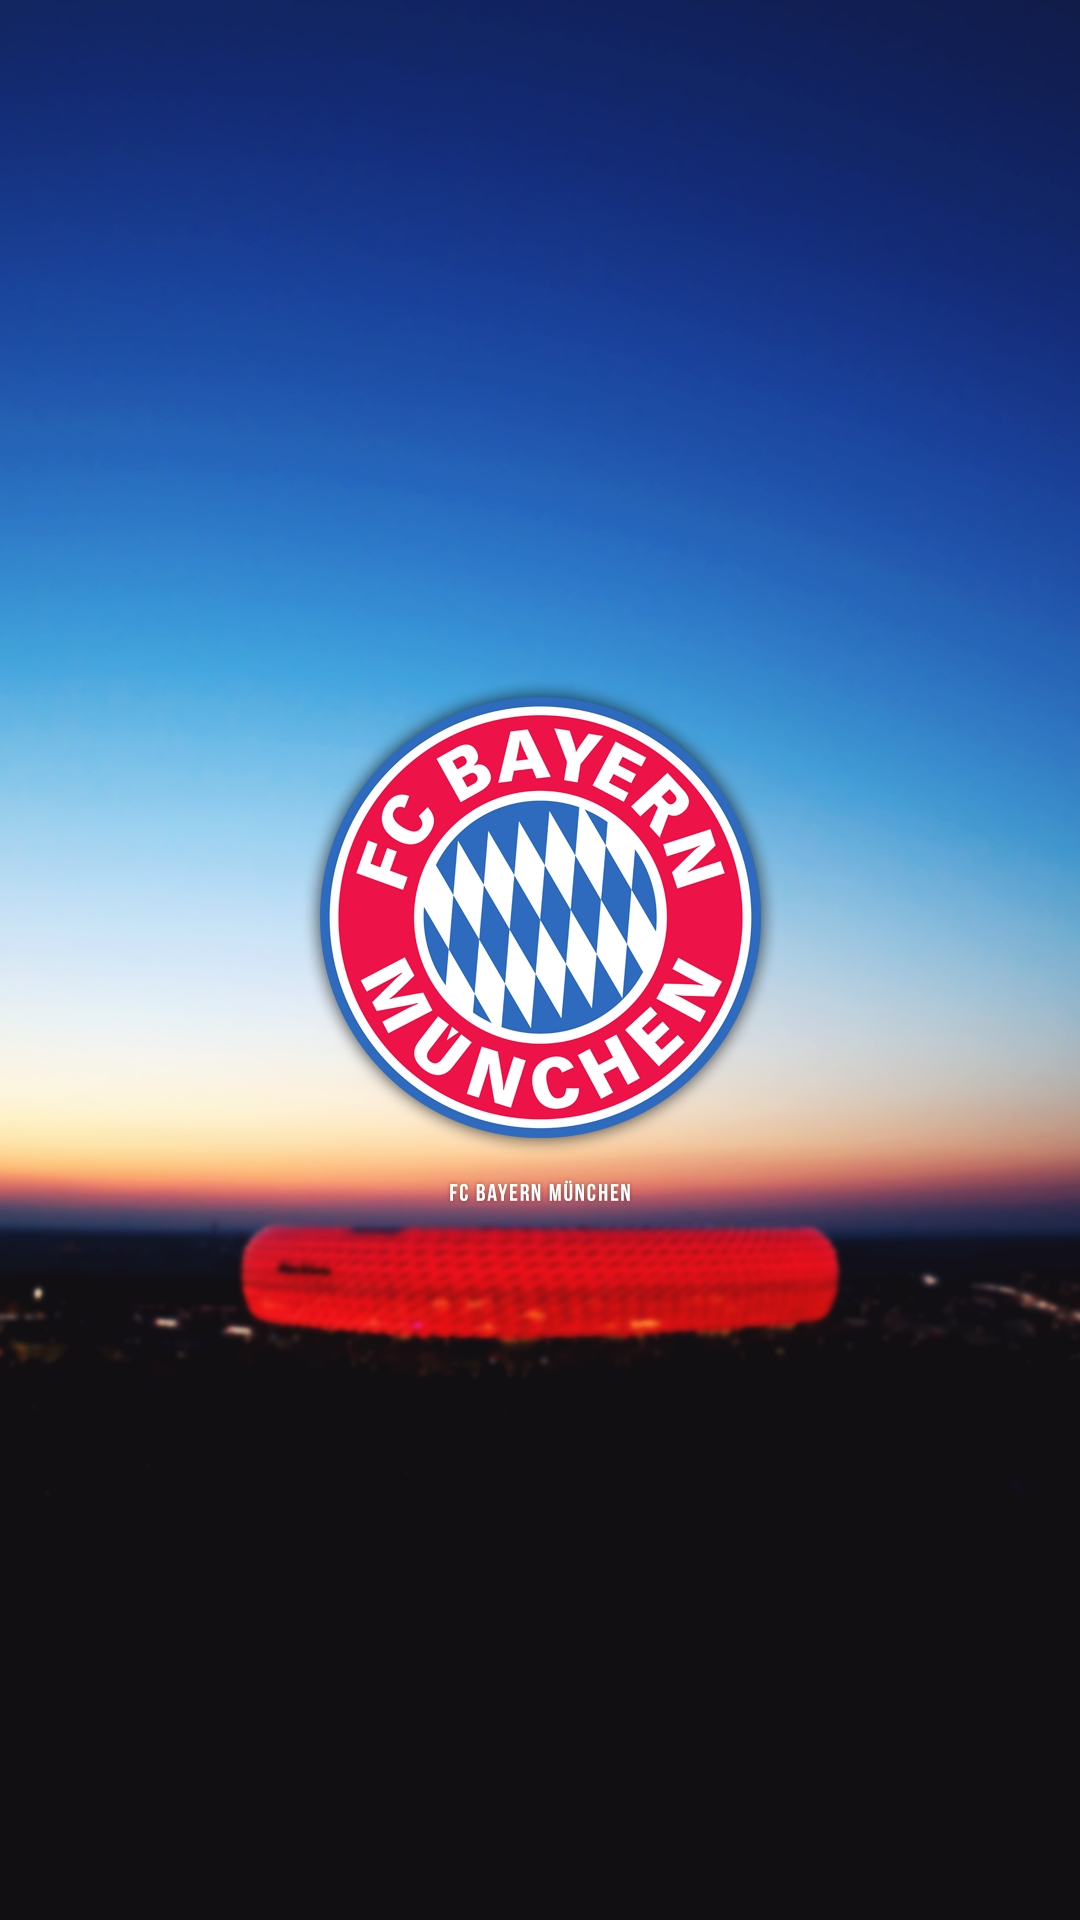 10 New Bayern Munich Iphone Wallpaper FULL HD 1920×1080 For PC Desktop